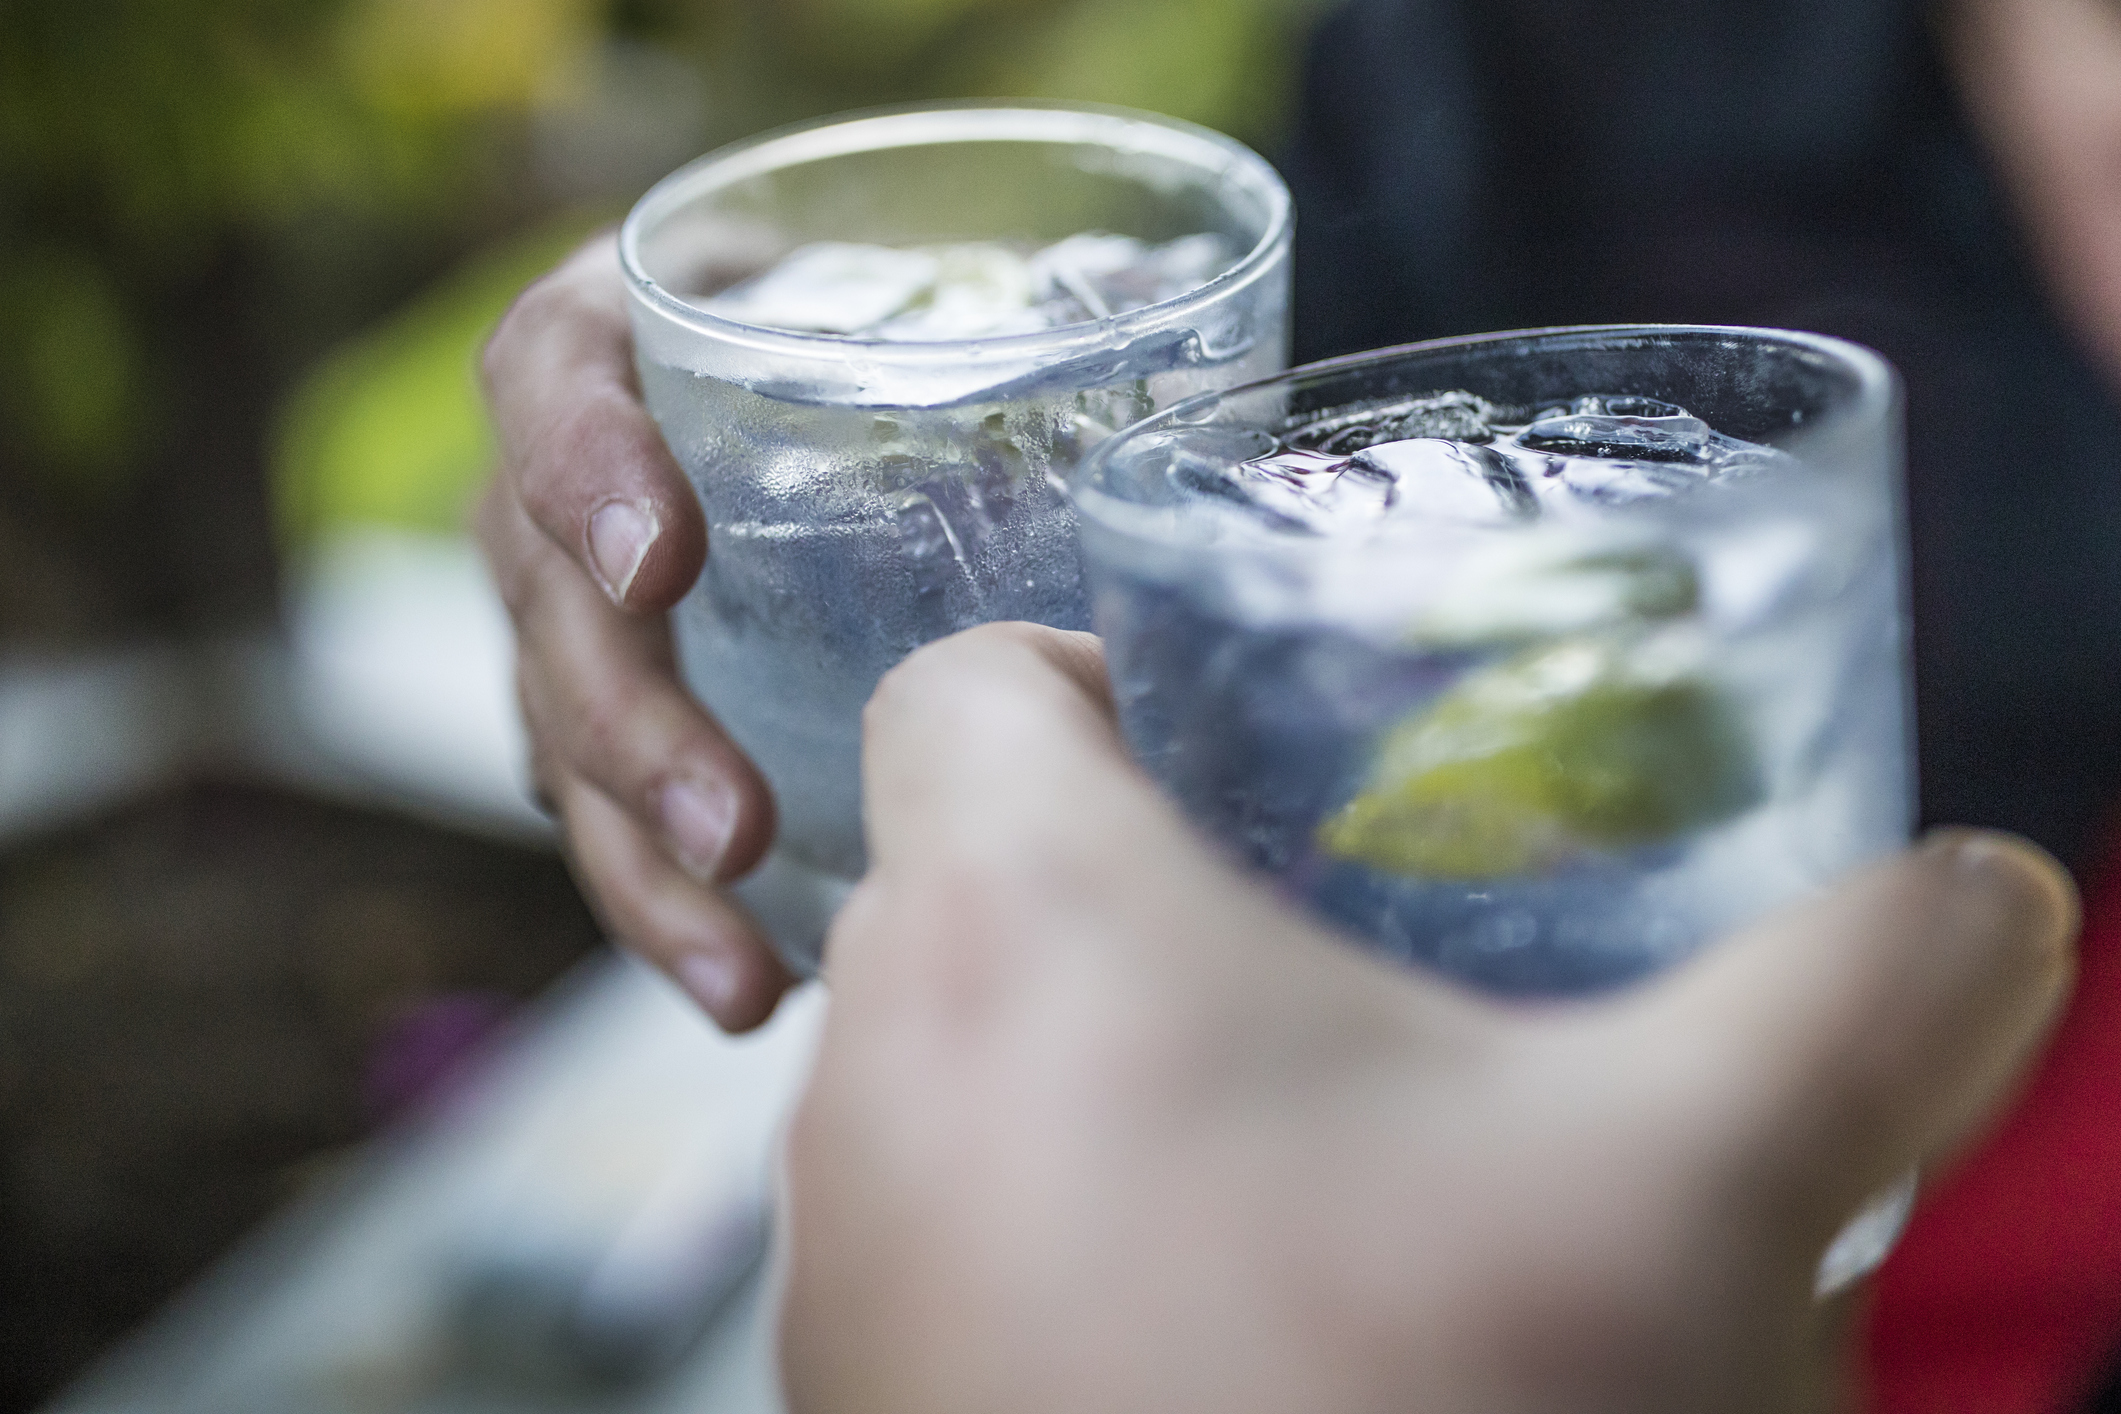 There's a huge gin auction today after business went bust